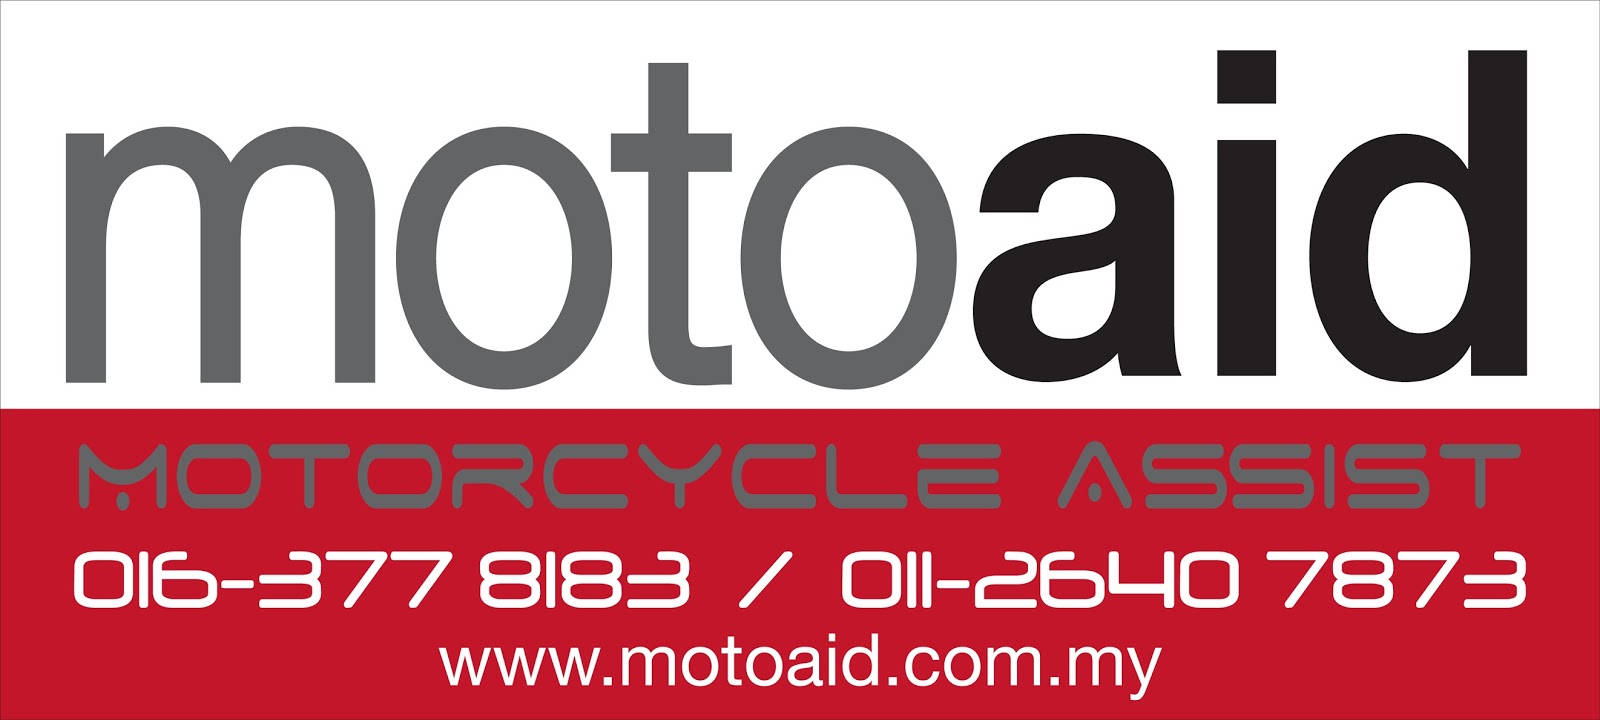 MotoAid Sticker 40x18 2015